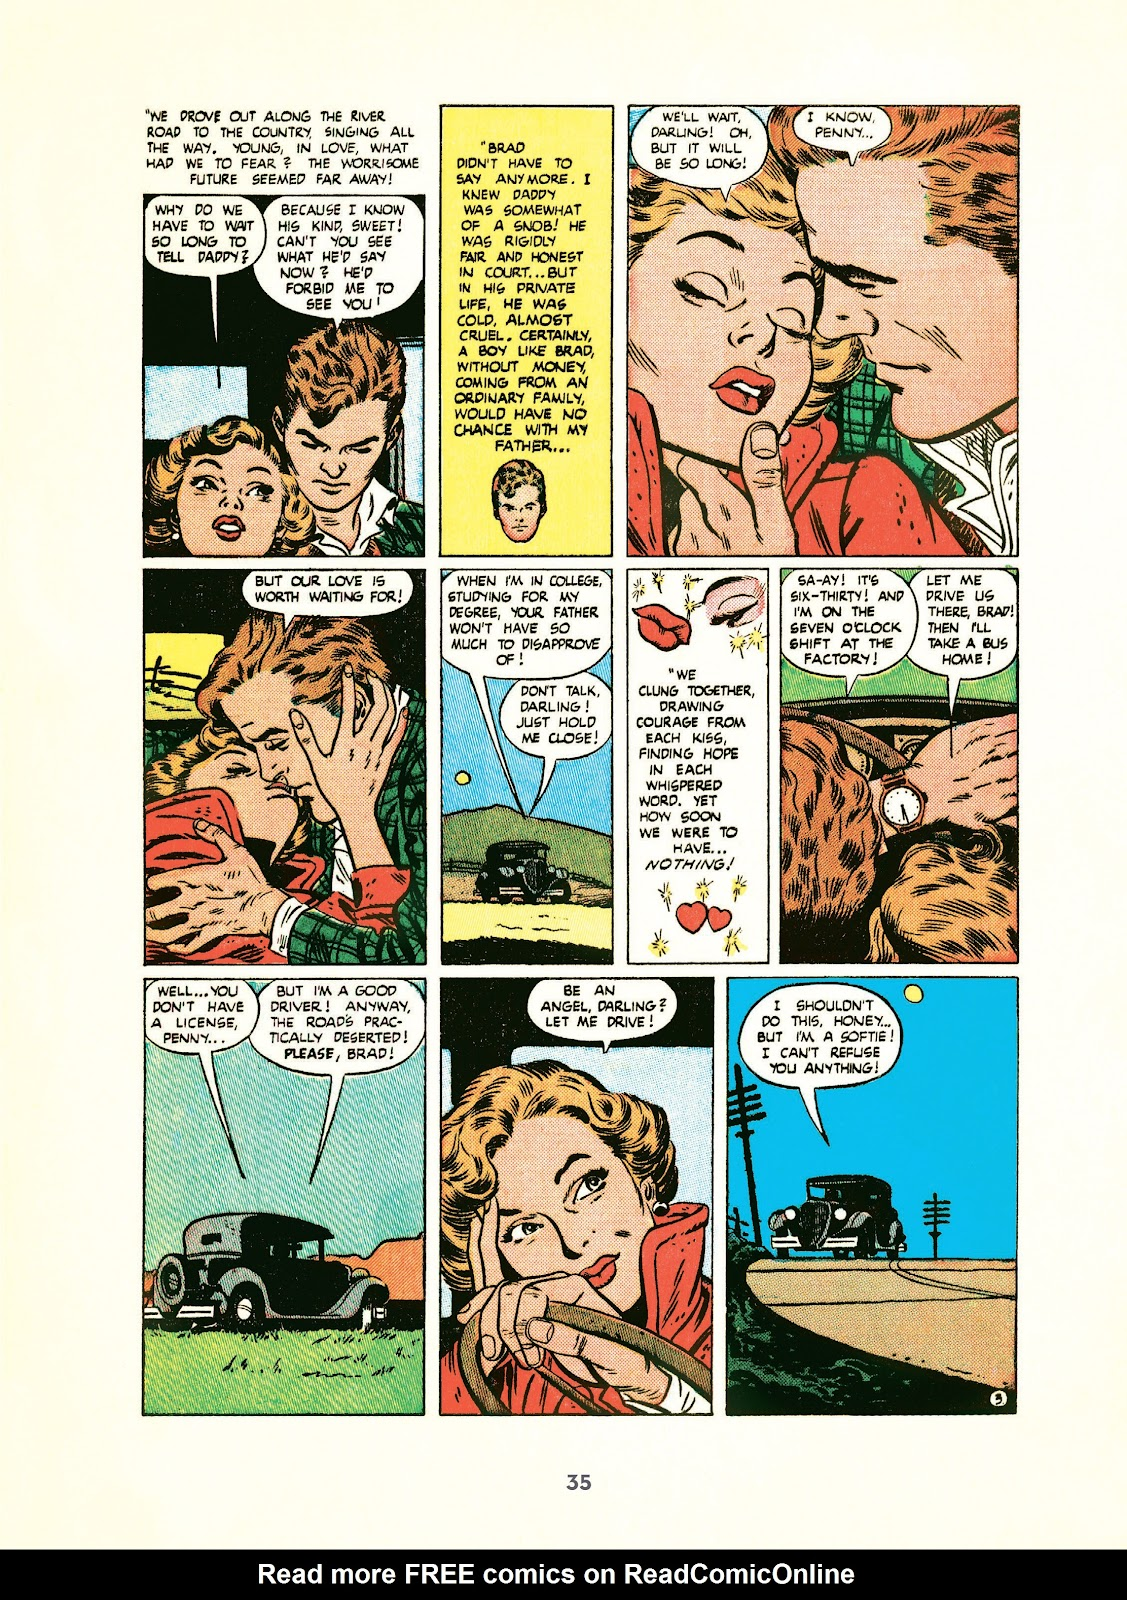 Read online Setting the Standard: Comics by Alex Toth 1952-1954 comic -  Issue # TPB (Part 1) - 34